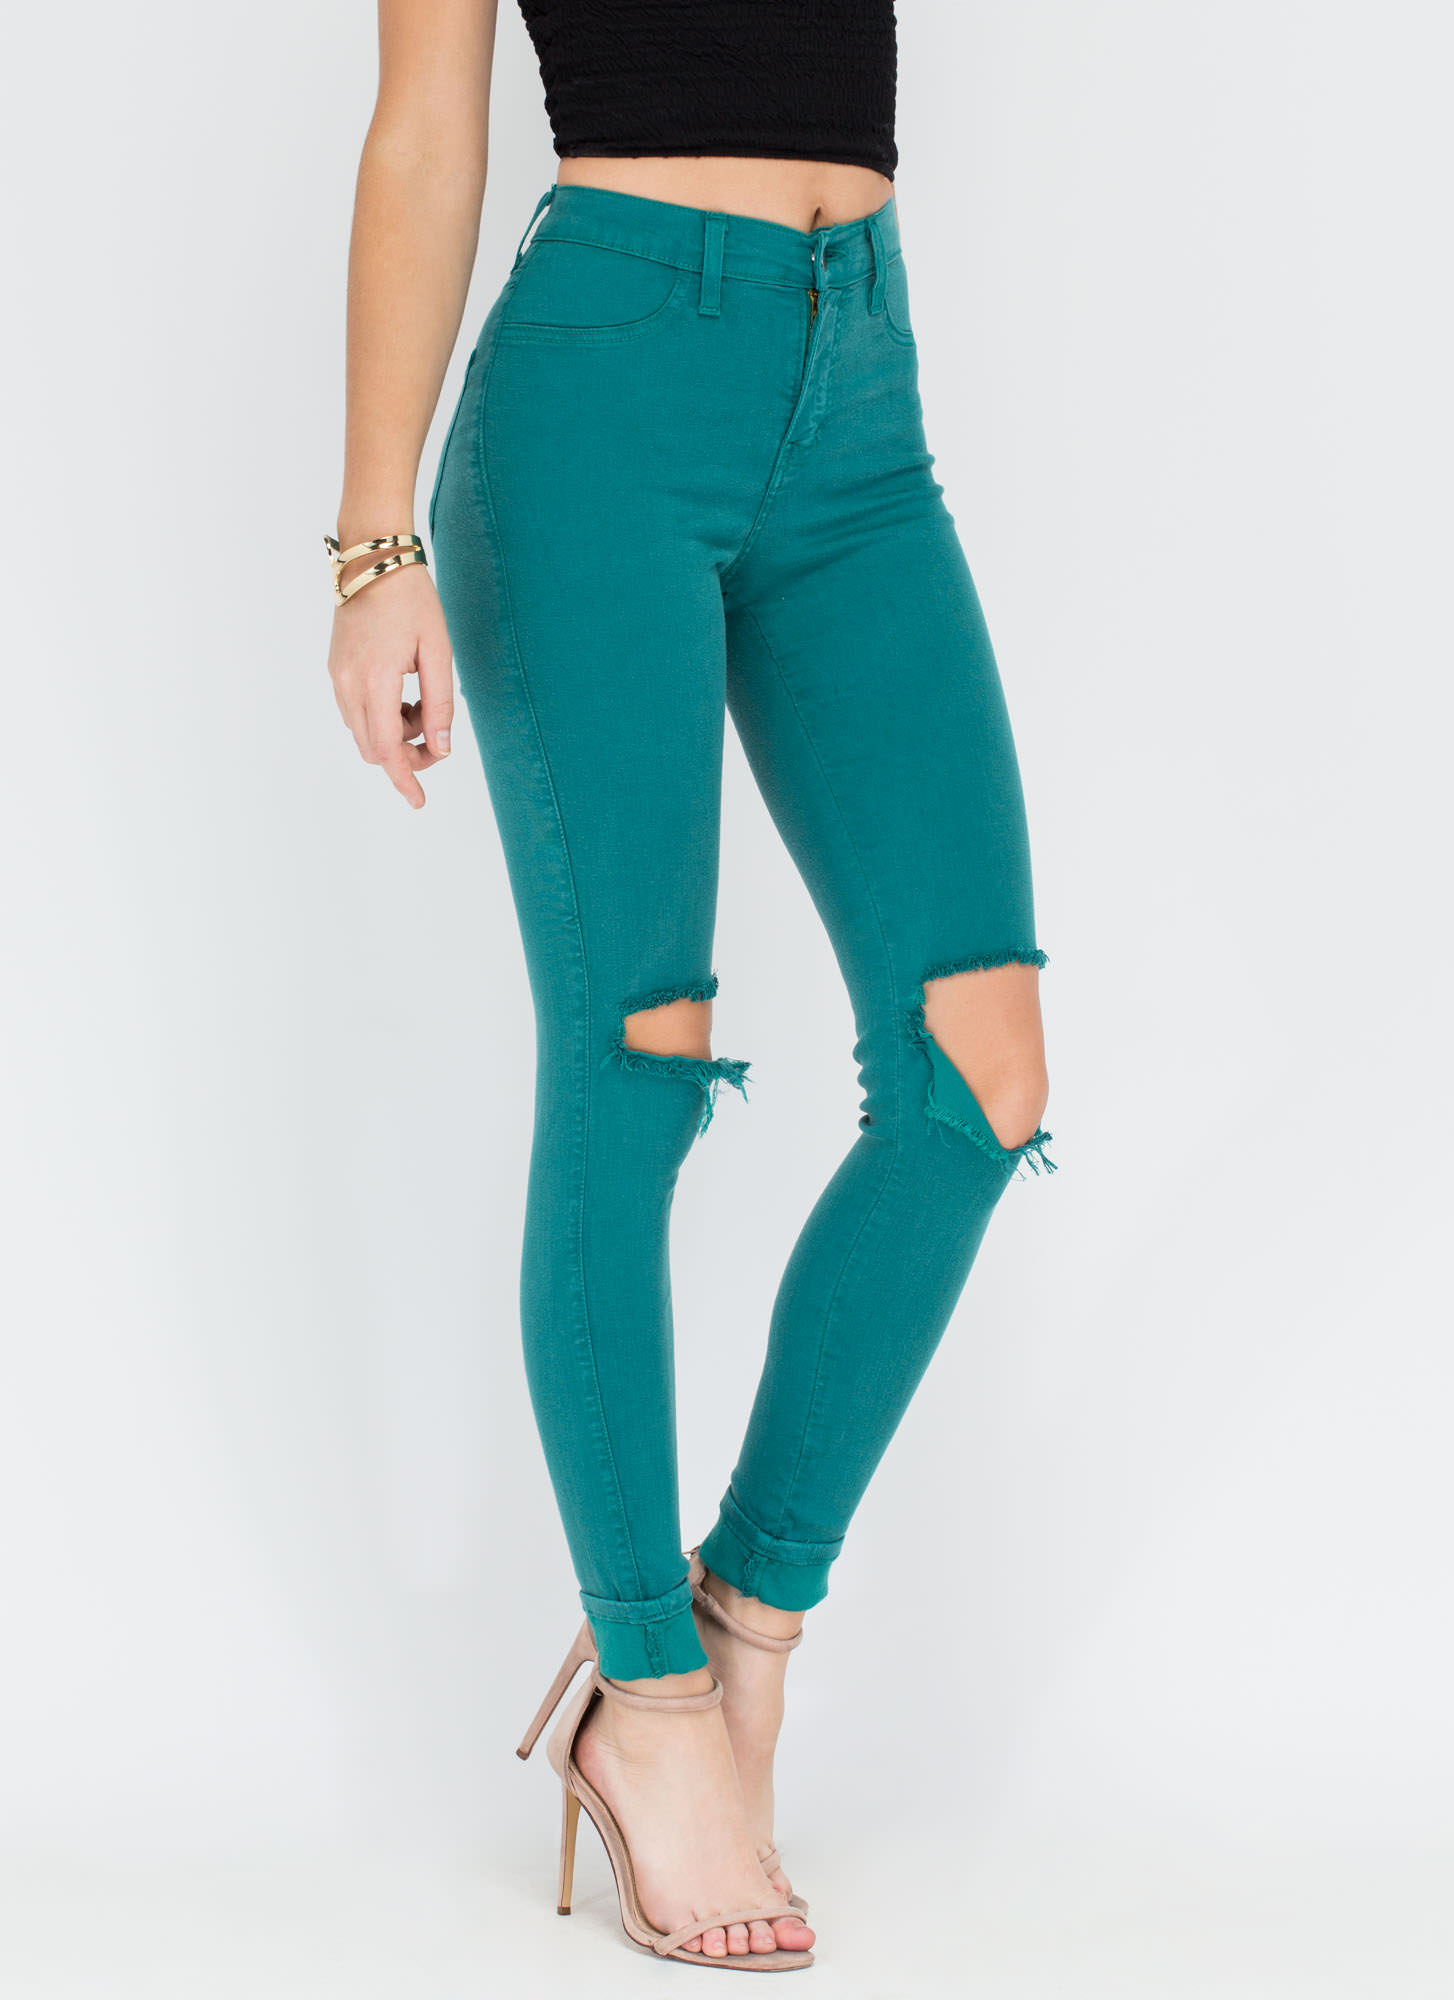 Make The Cut-Out Distressed Skinny Jeans TEAL